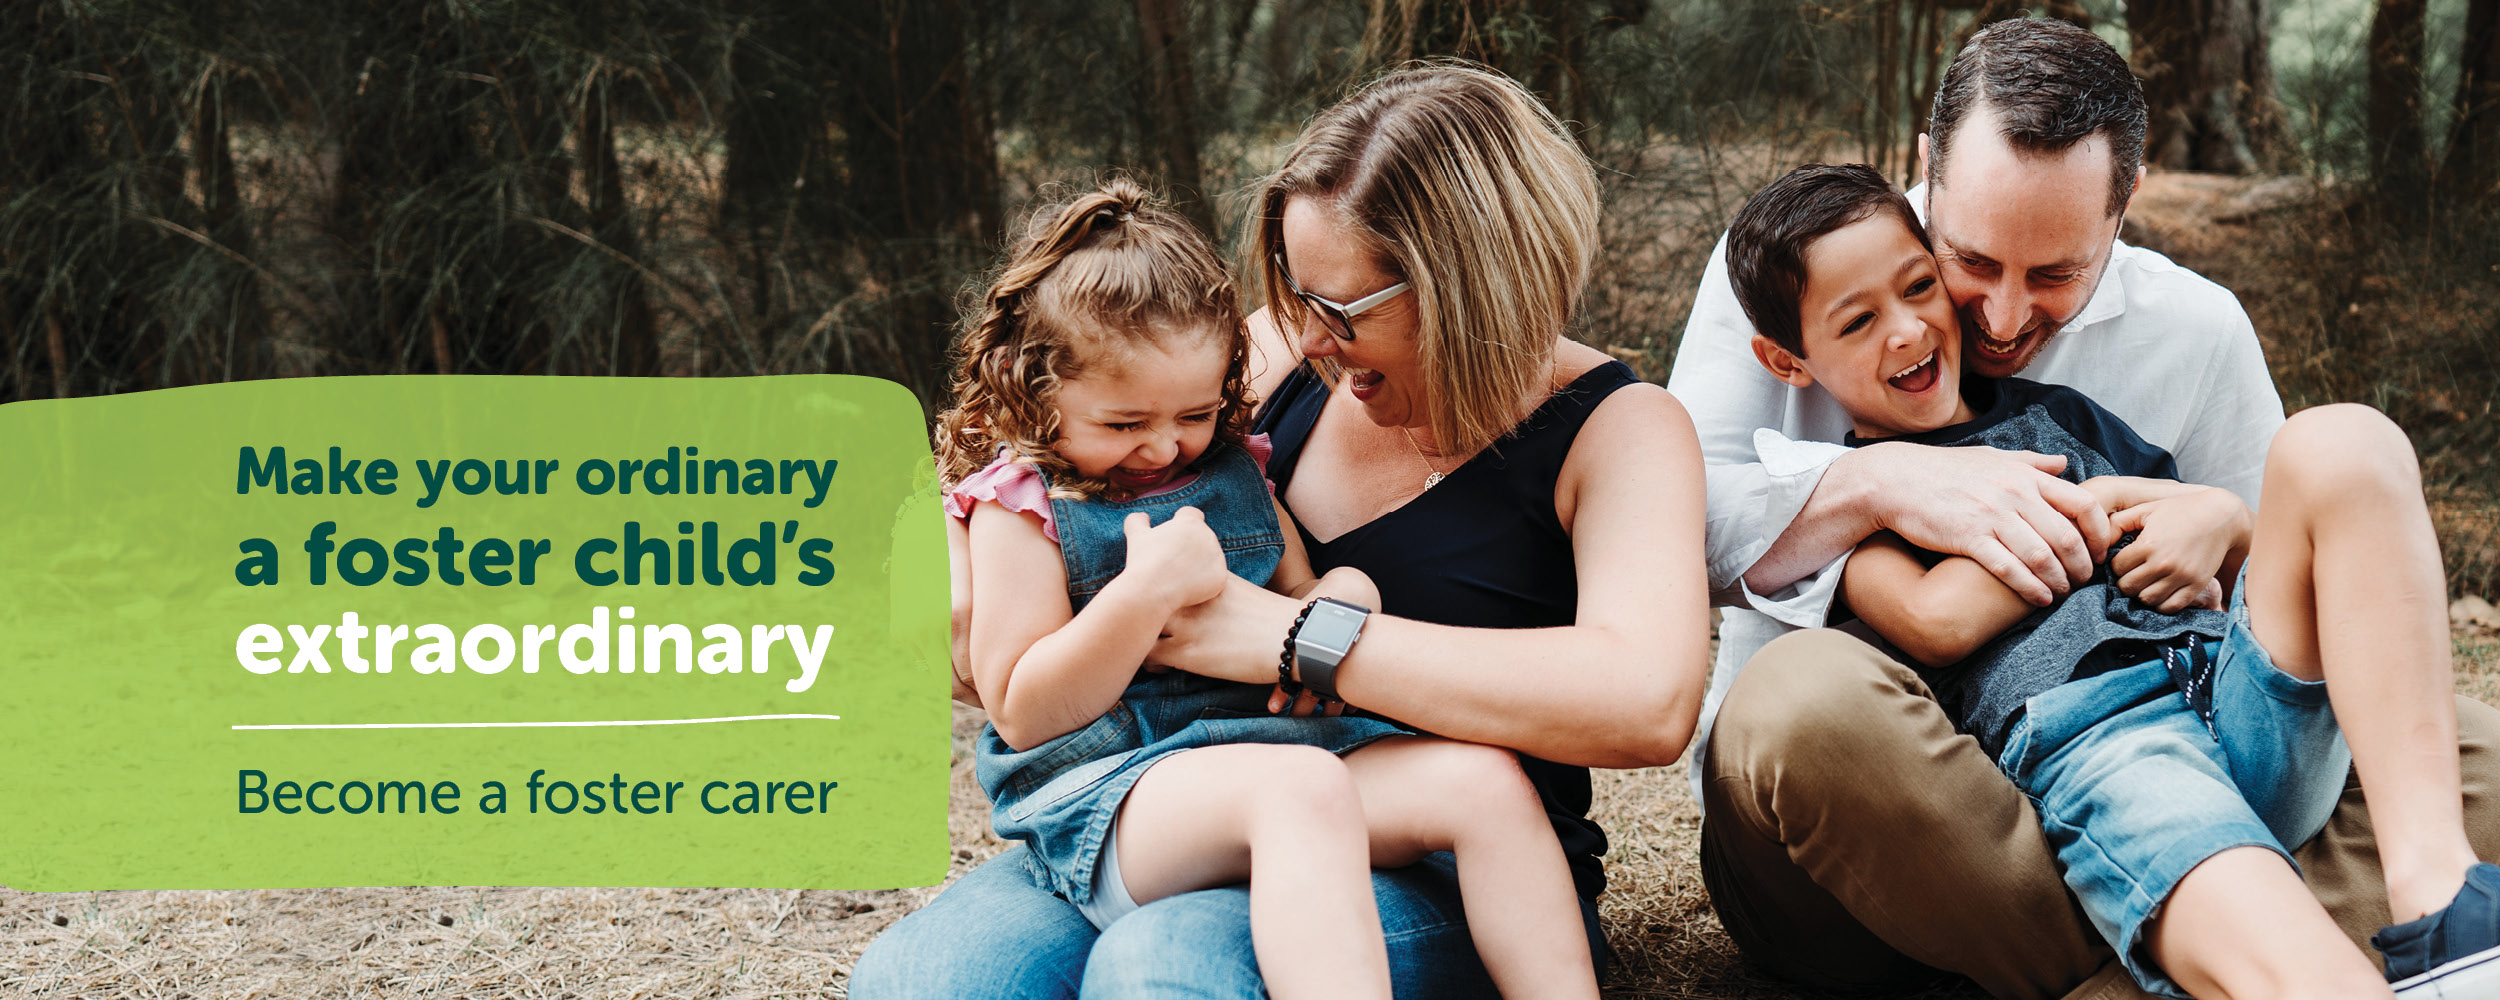 Make your ordinary a foster child's extraordinary. Become a foster carer.